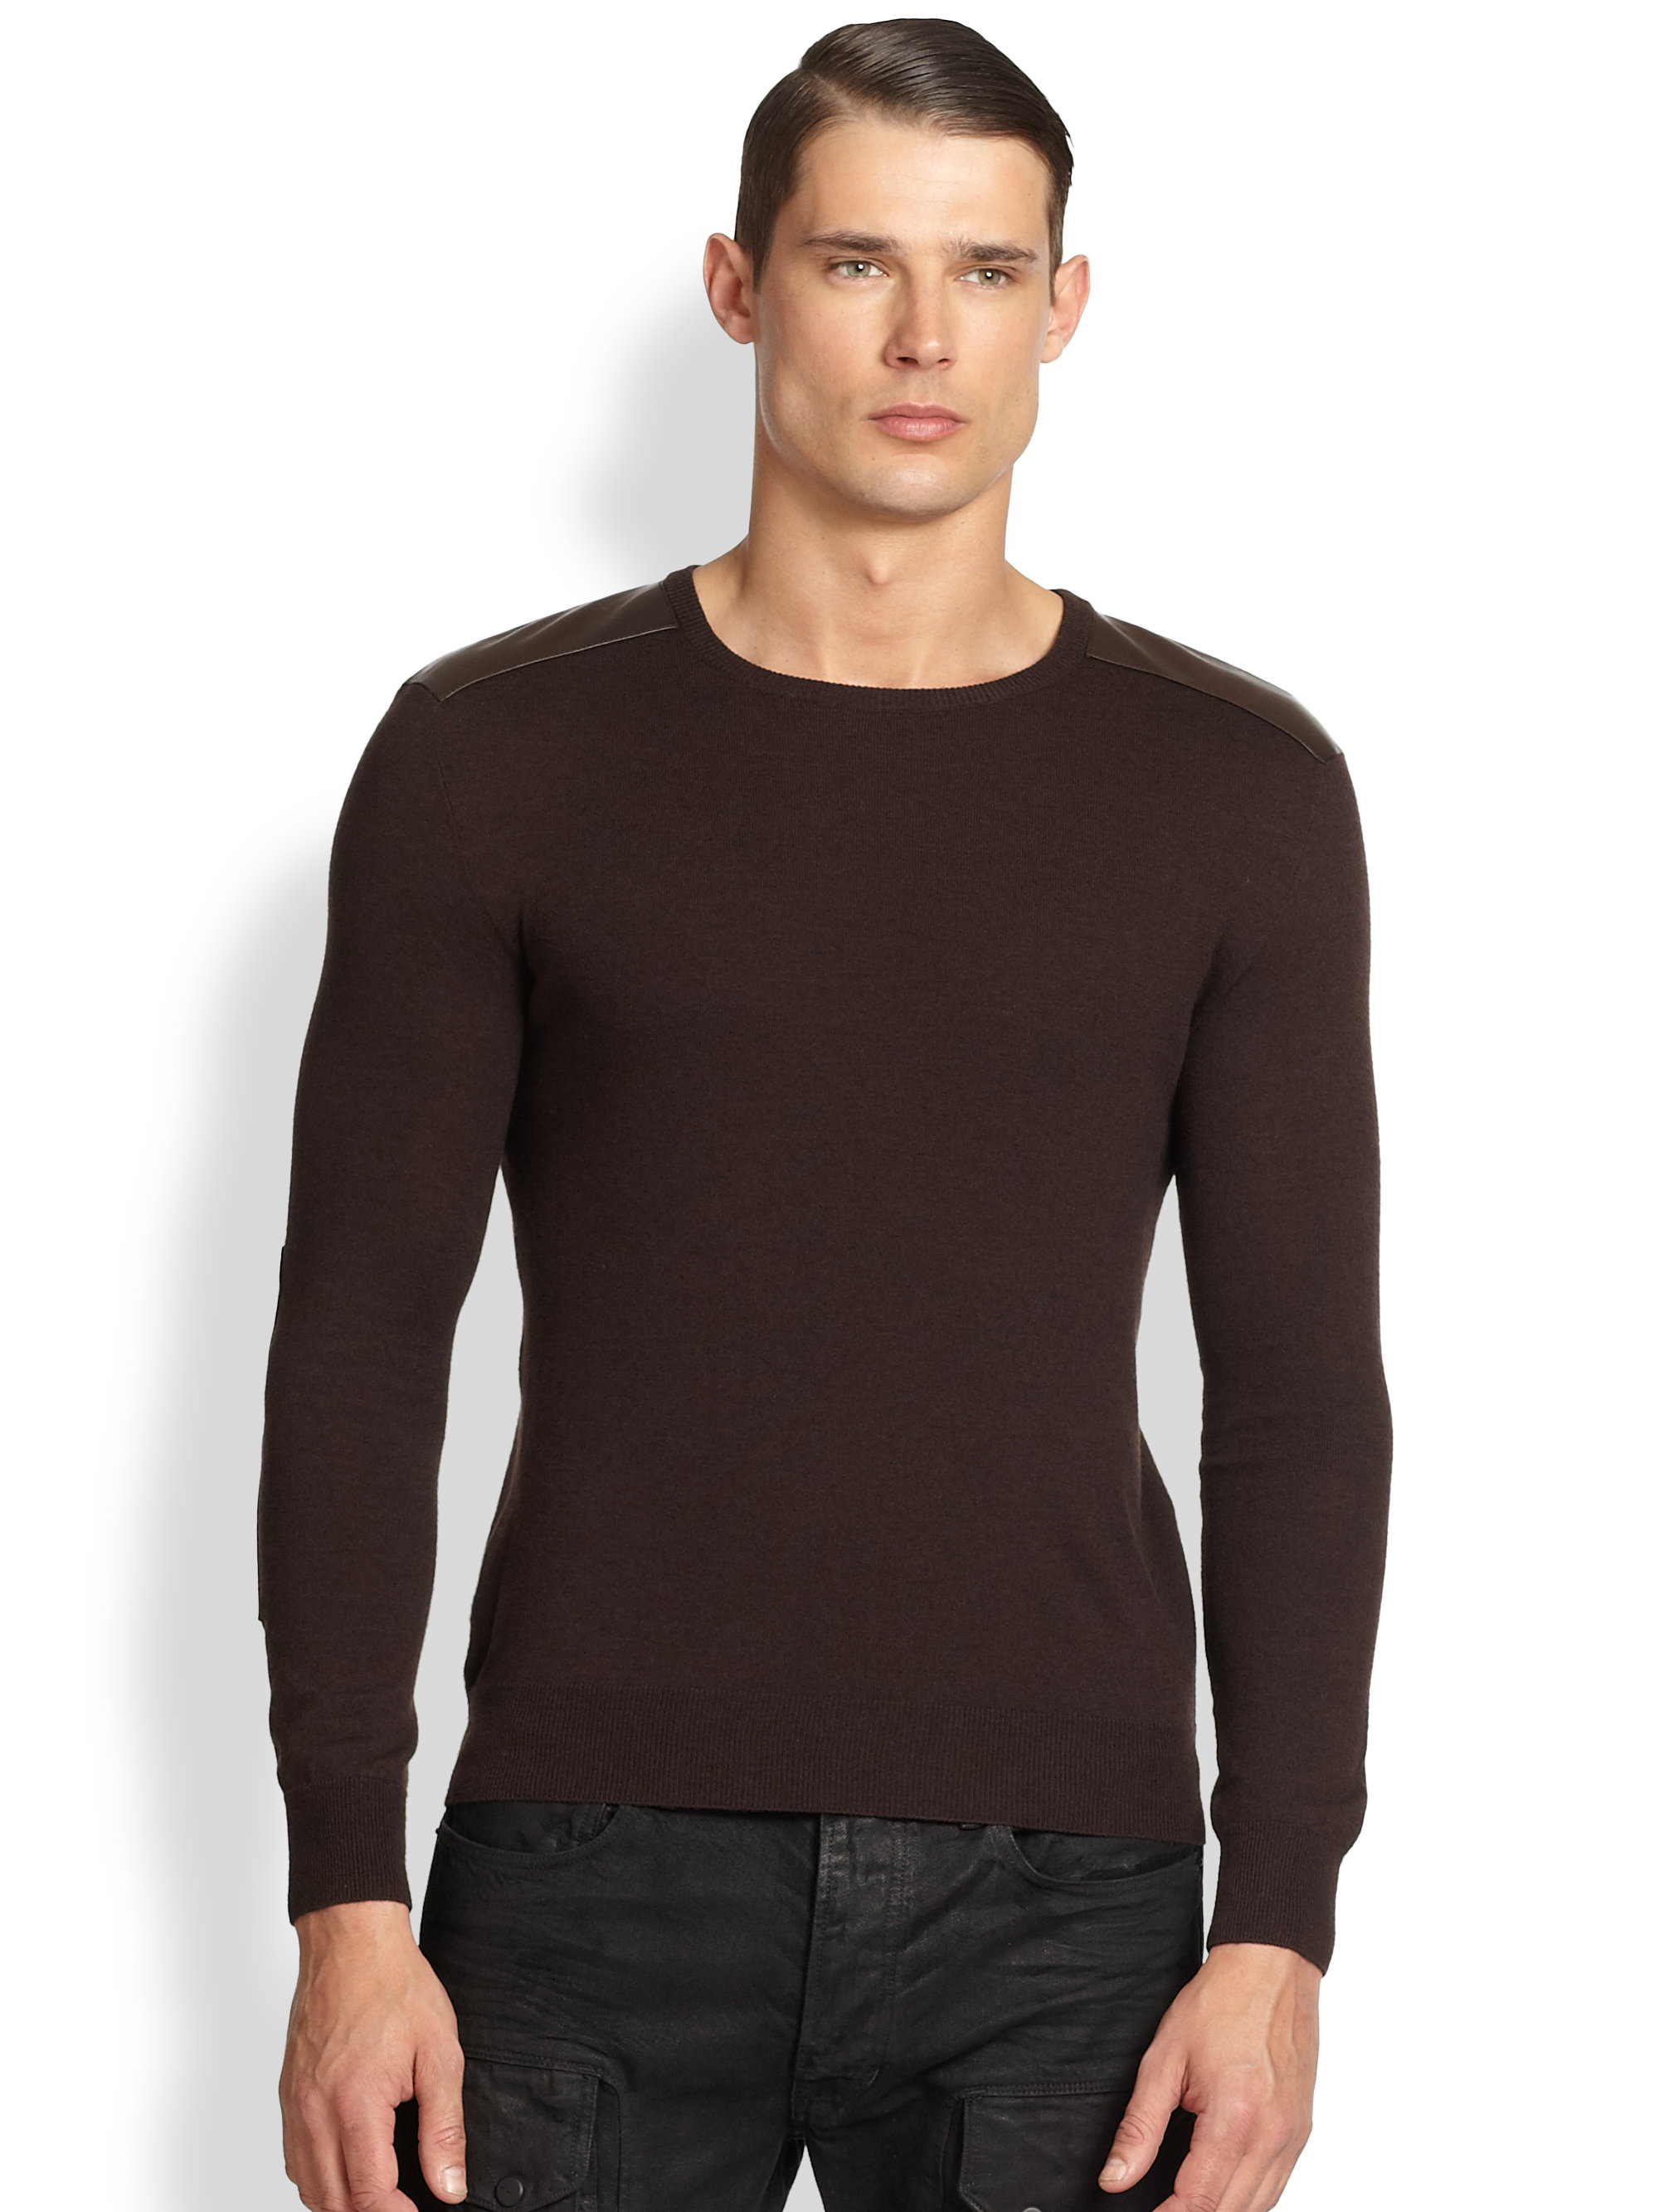 Ralph lauren black label Wool Leather Patch Sweater in Brown for ...